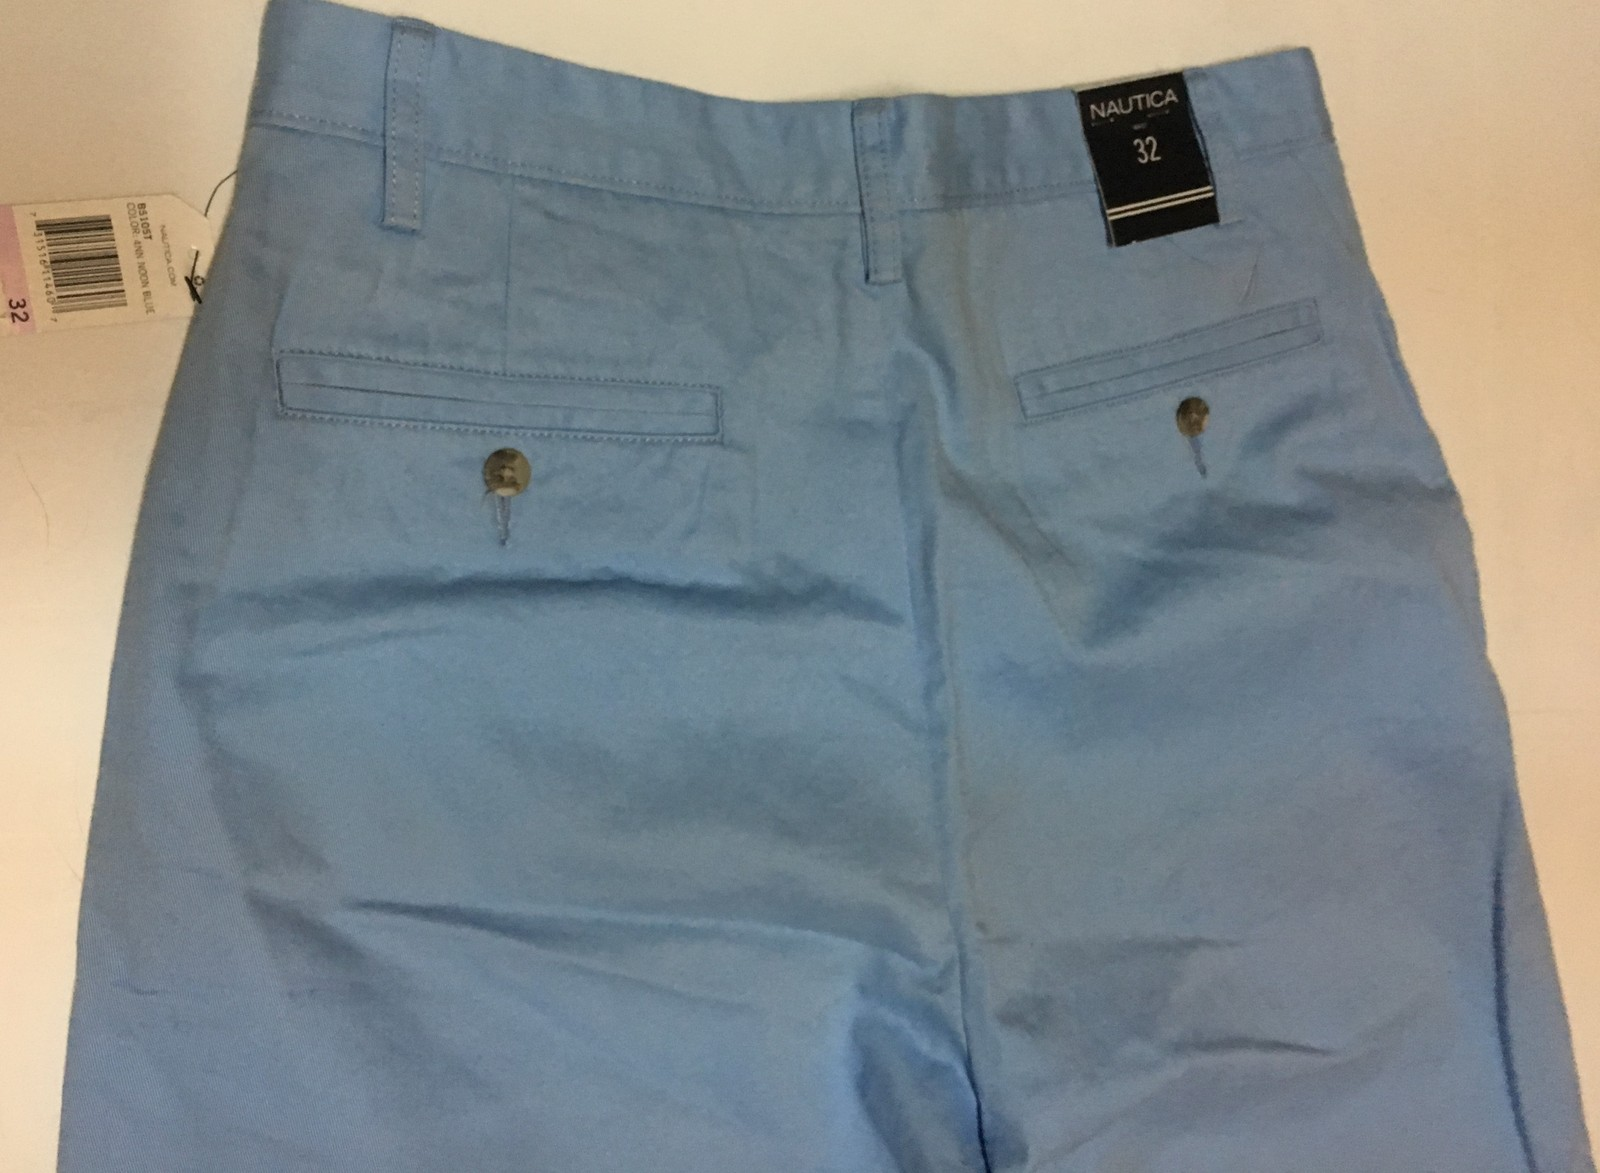 Nautica Men's Blue Deck Shorts Sz 32 NWT